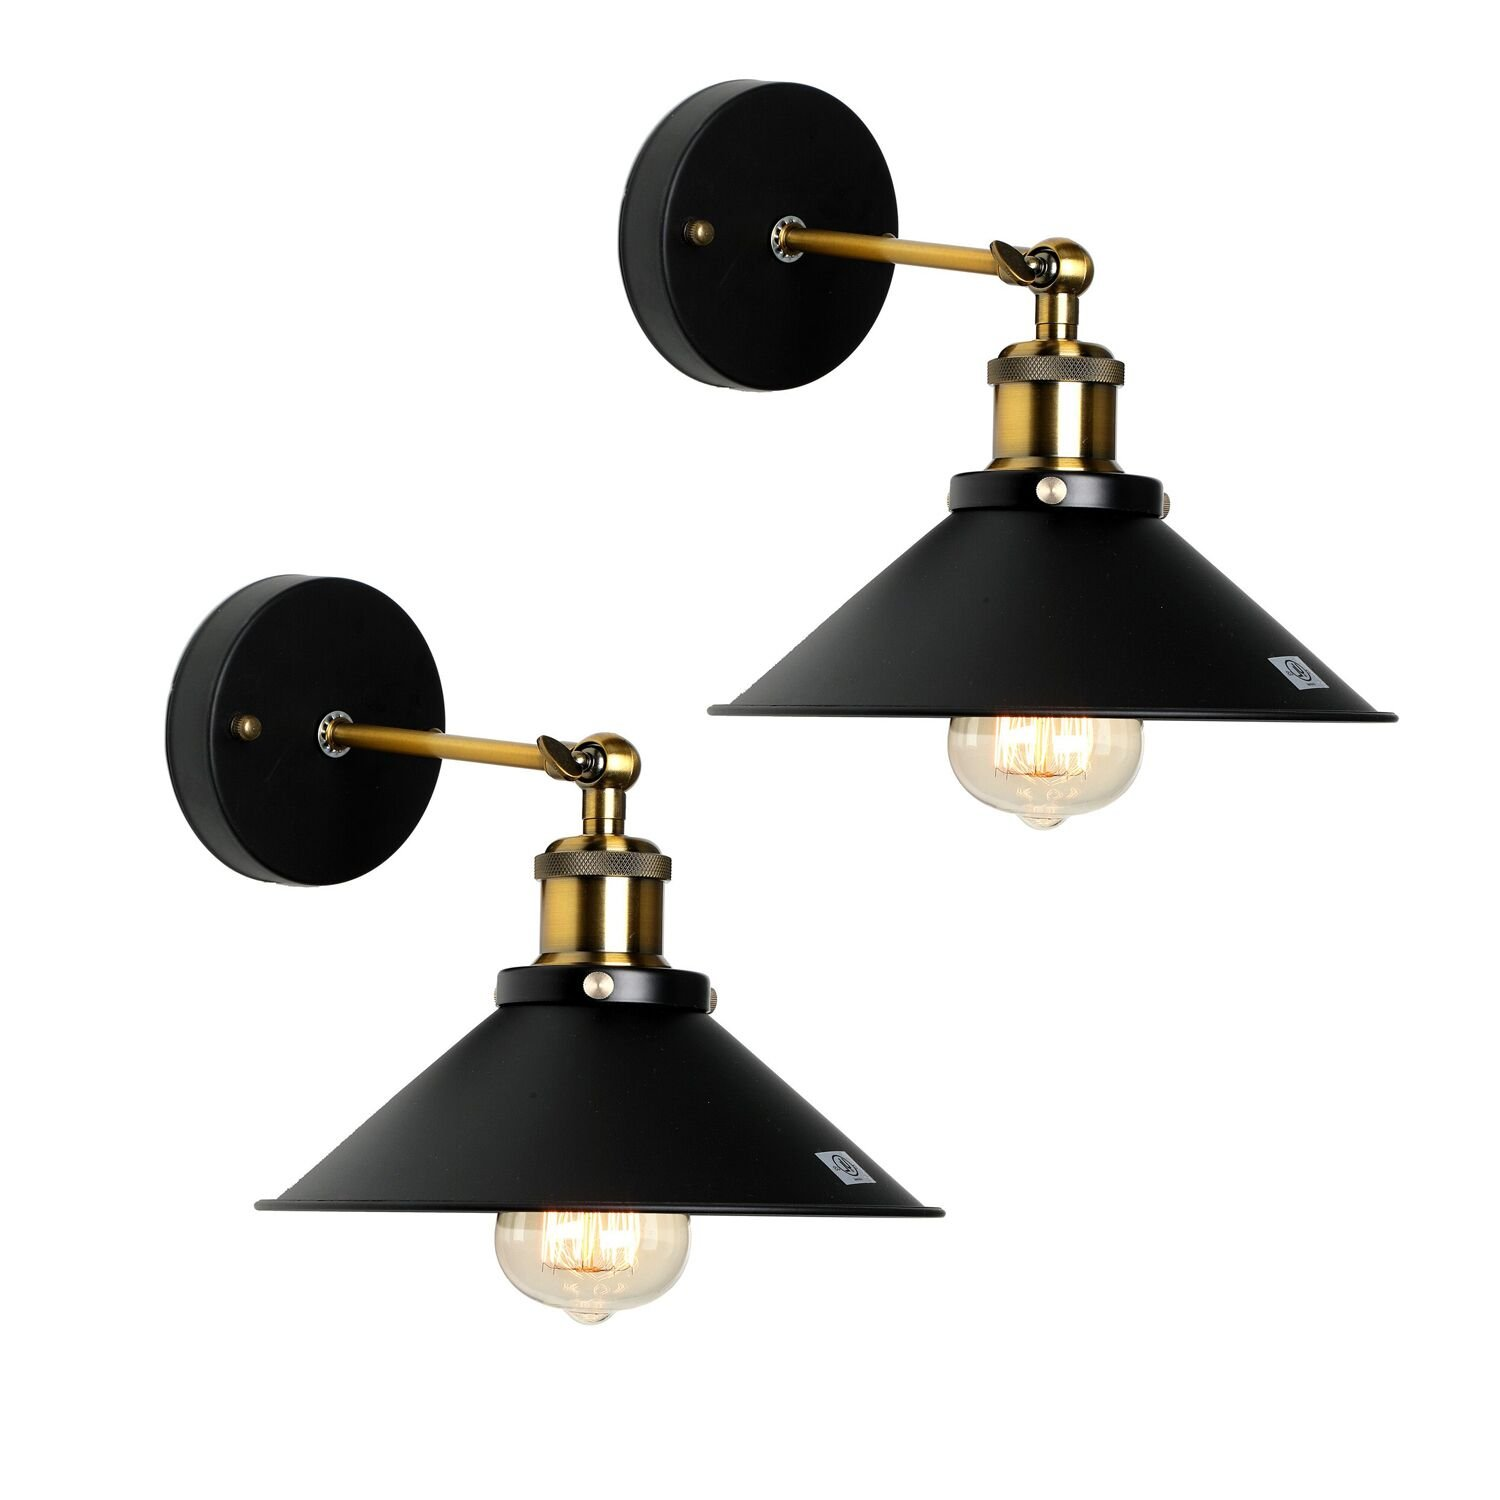 Wall Sconce Lighting Shade,Topotdor 180 Degree Adjustable Metal Edison Vintage Wall Light Lamp Fixture (Antique Brass, set of 2)